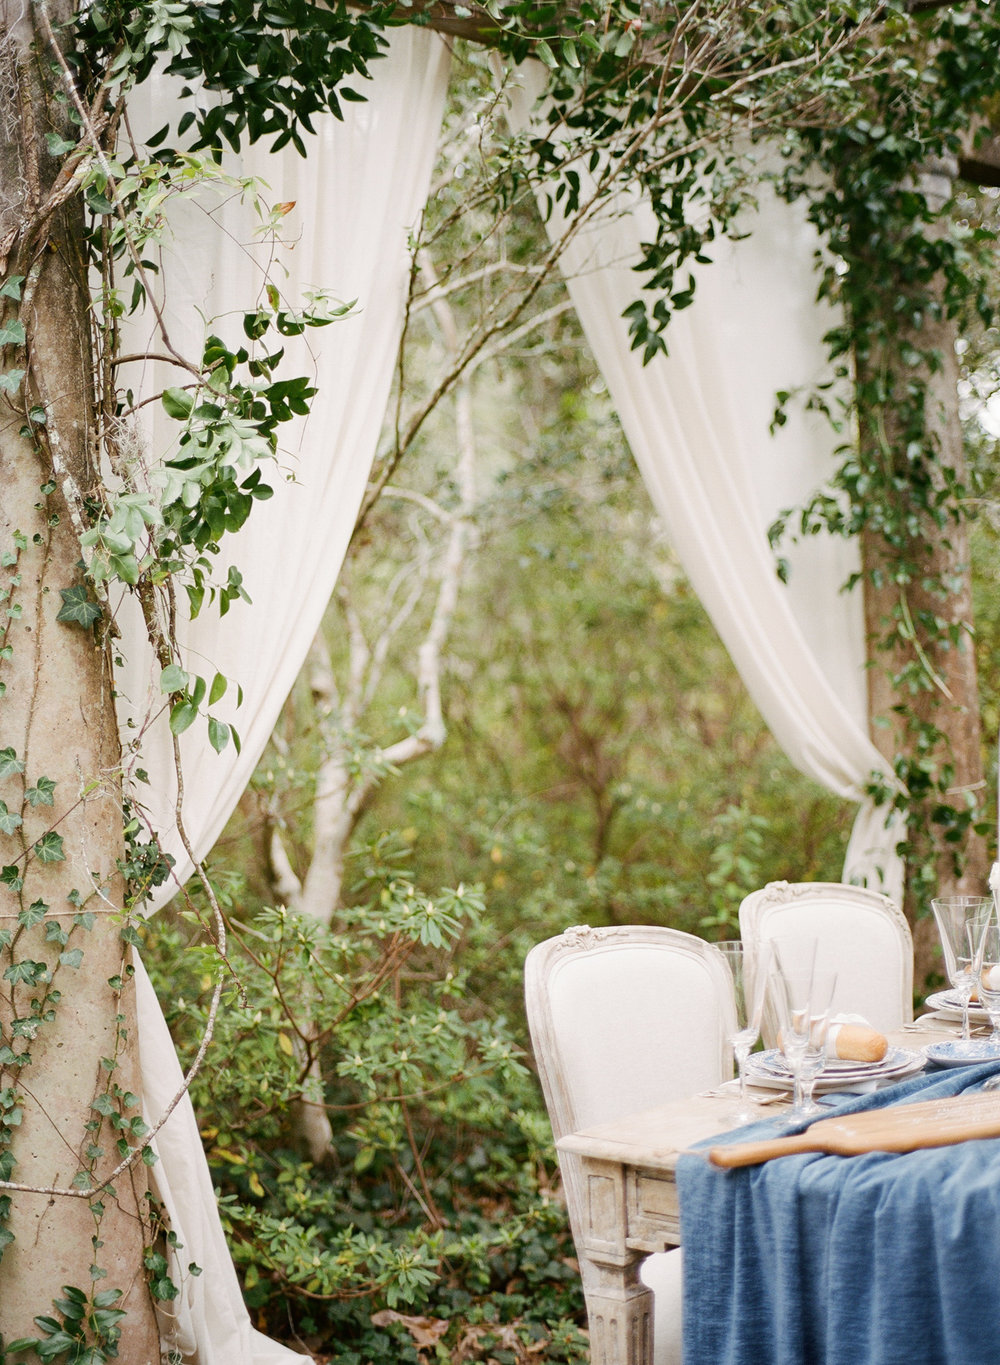 Airlie-gardens-wedding-nc-film-photographer-02.jpg